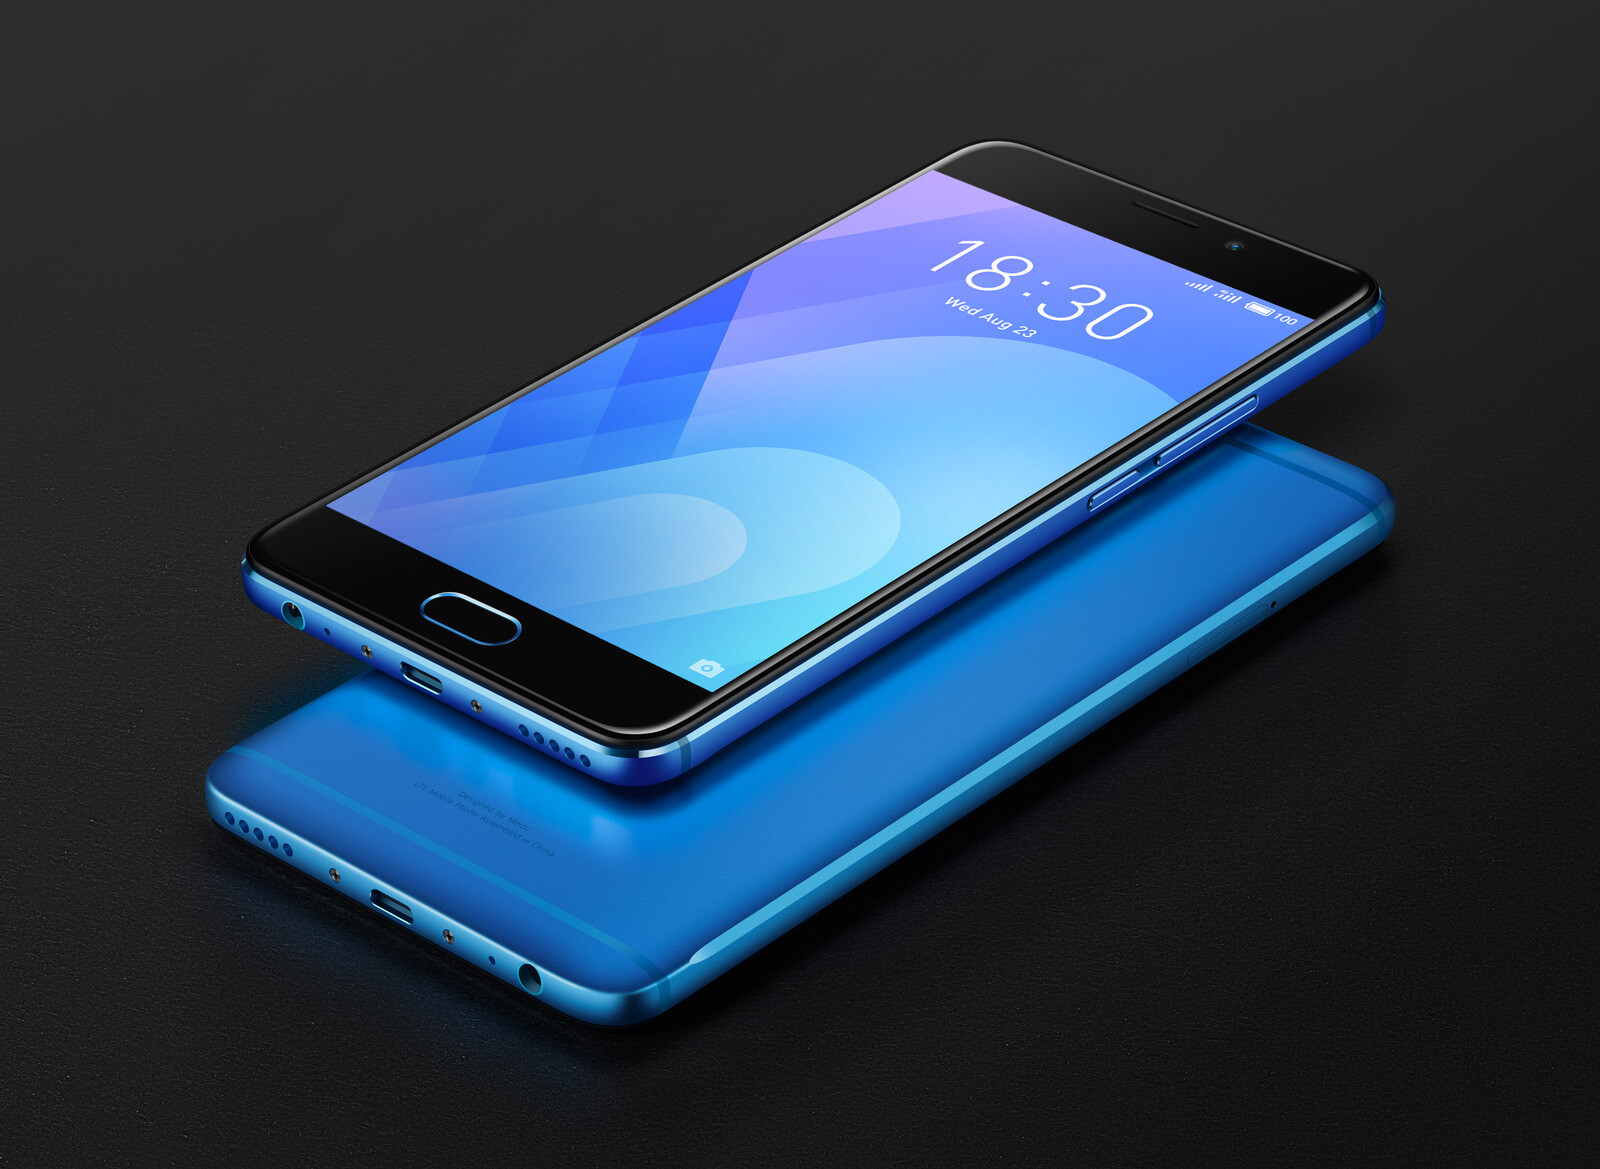 meizu unveils the m6 note snapdragon 625 dual cameras competitive pricing. Black Bedroom Furniture Sets. Home Design Ideas